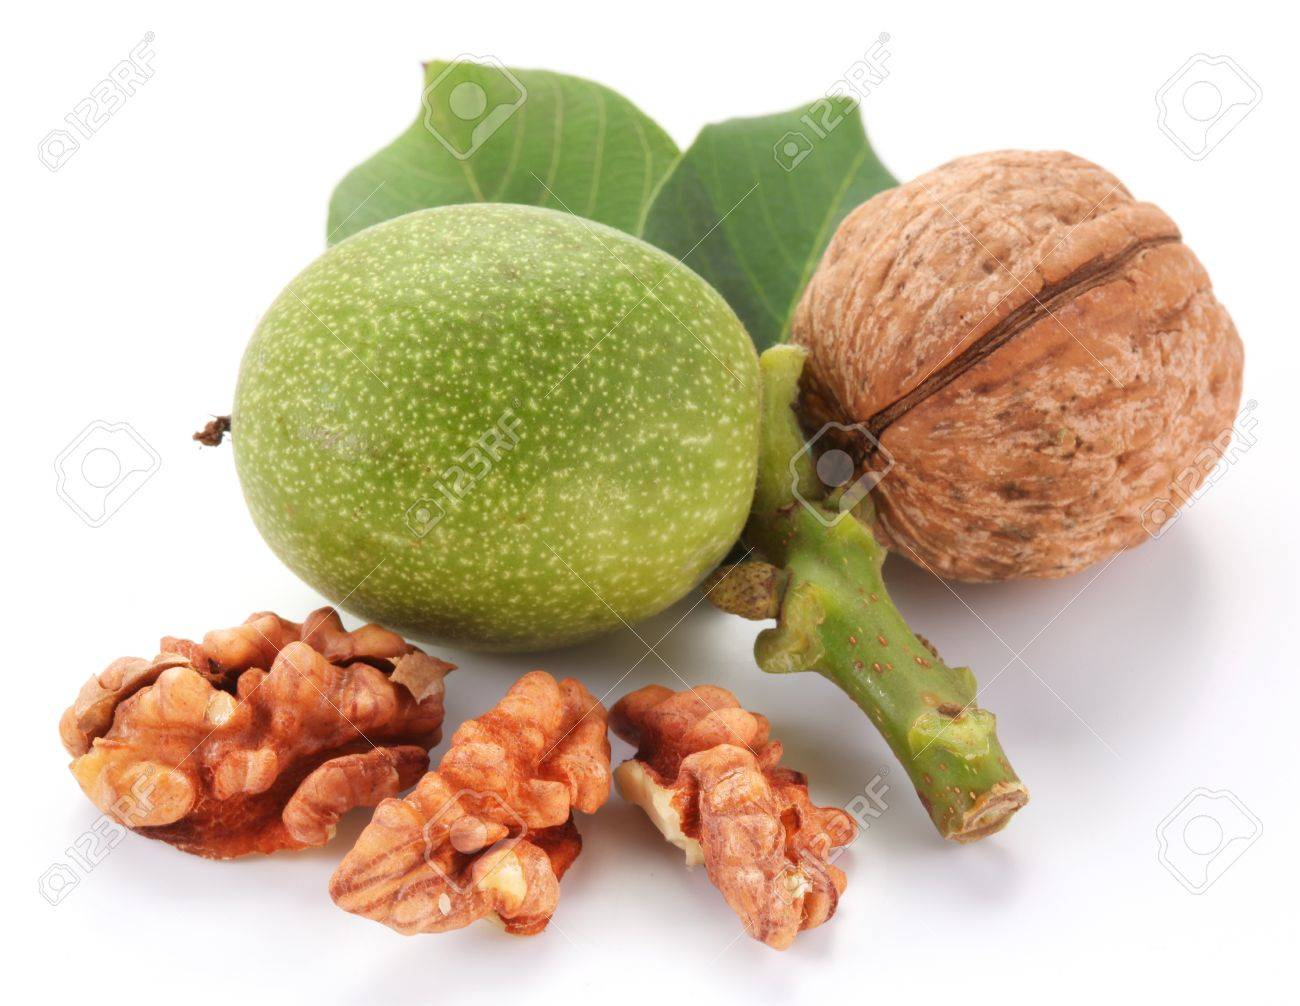 Green walnut; peeled walnut and its kernels. Isolated on a white background. - 10298938